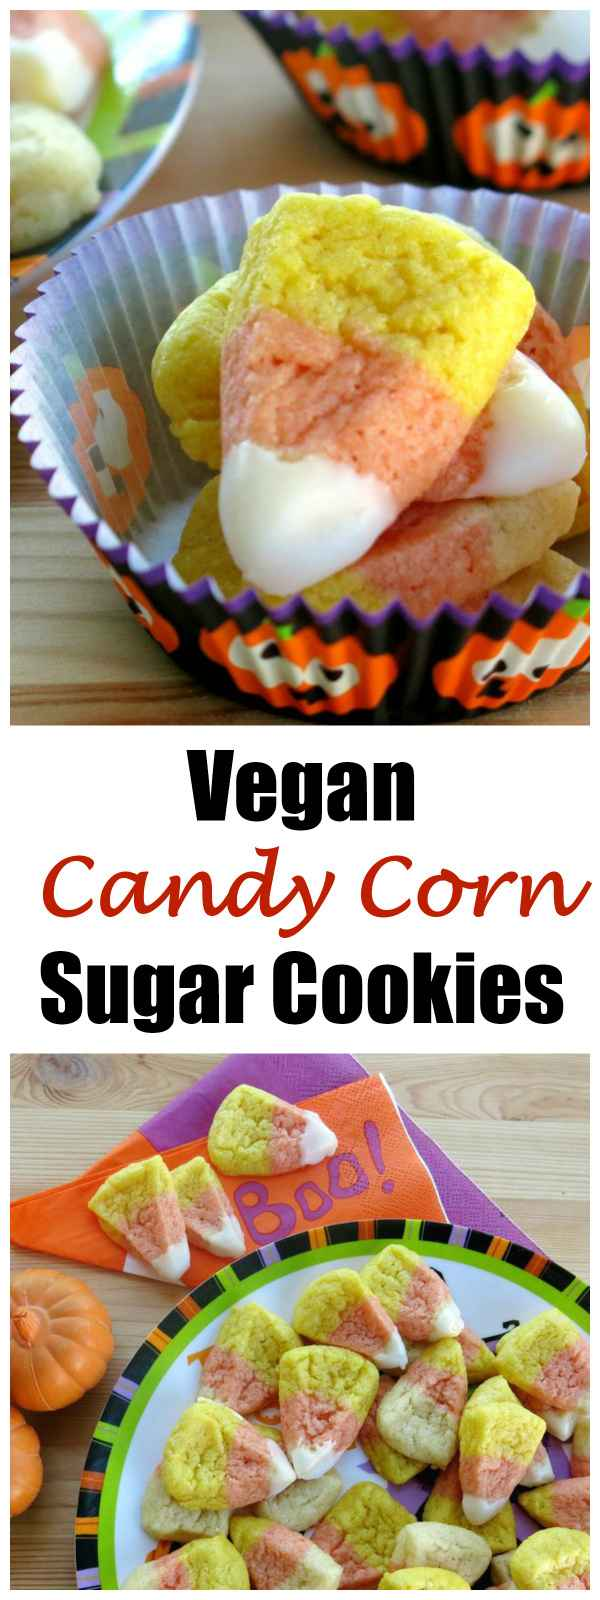 Easy Vegan Candy Corn Sugar Cookies Recipe